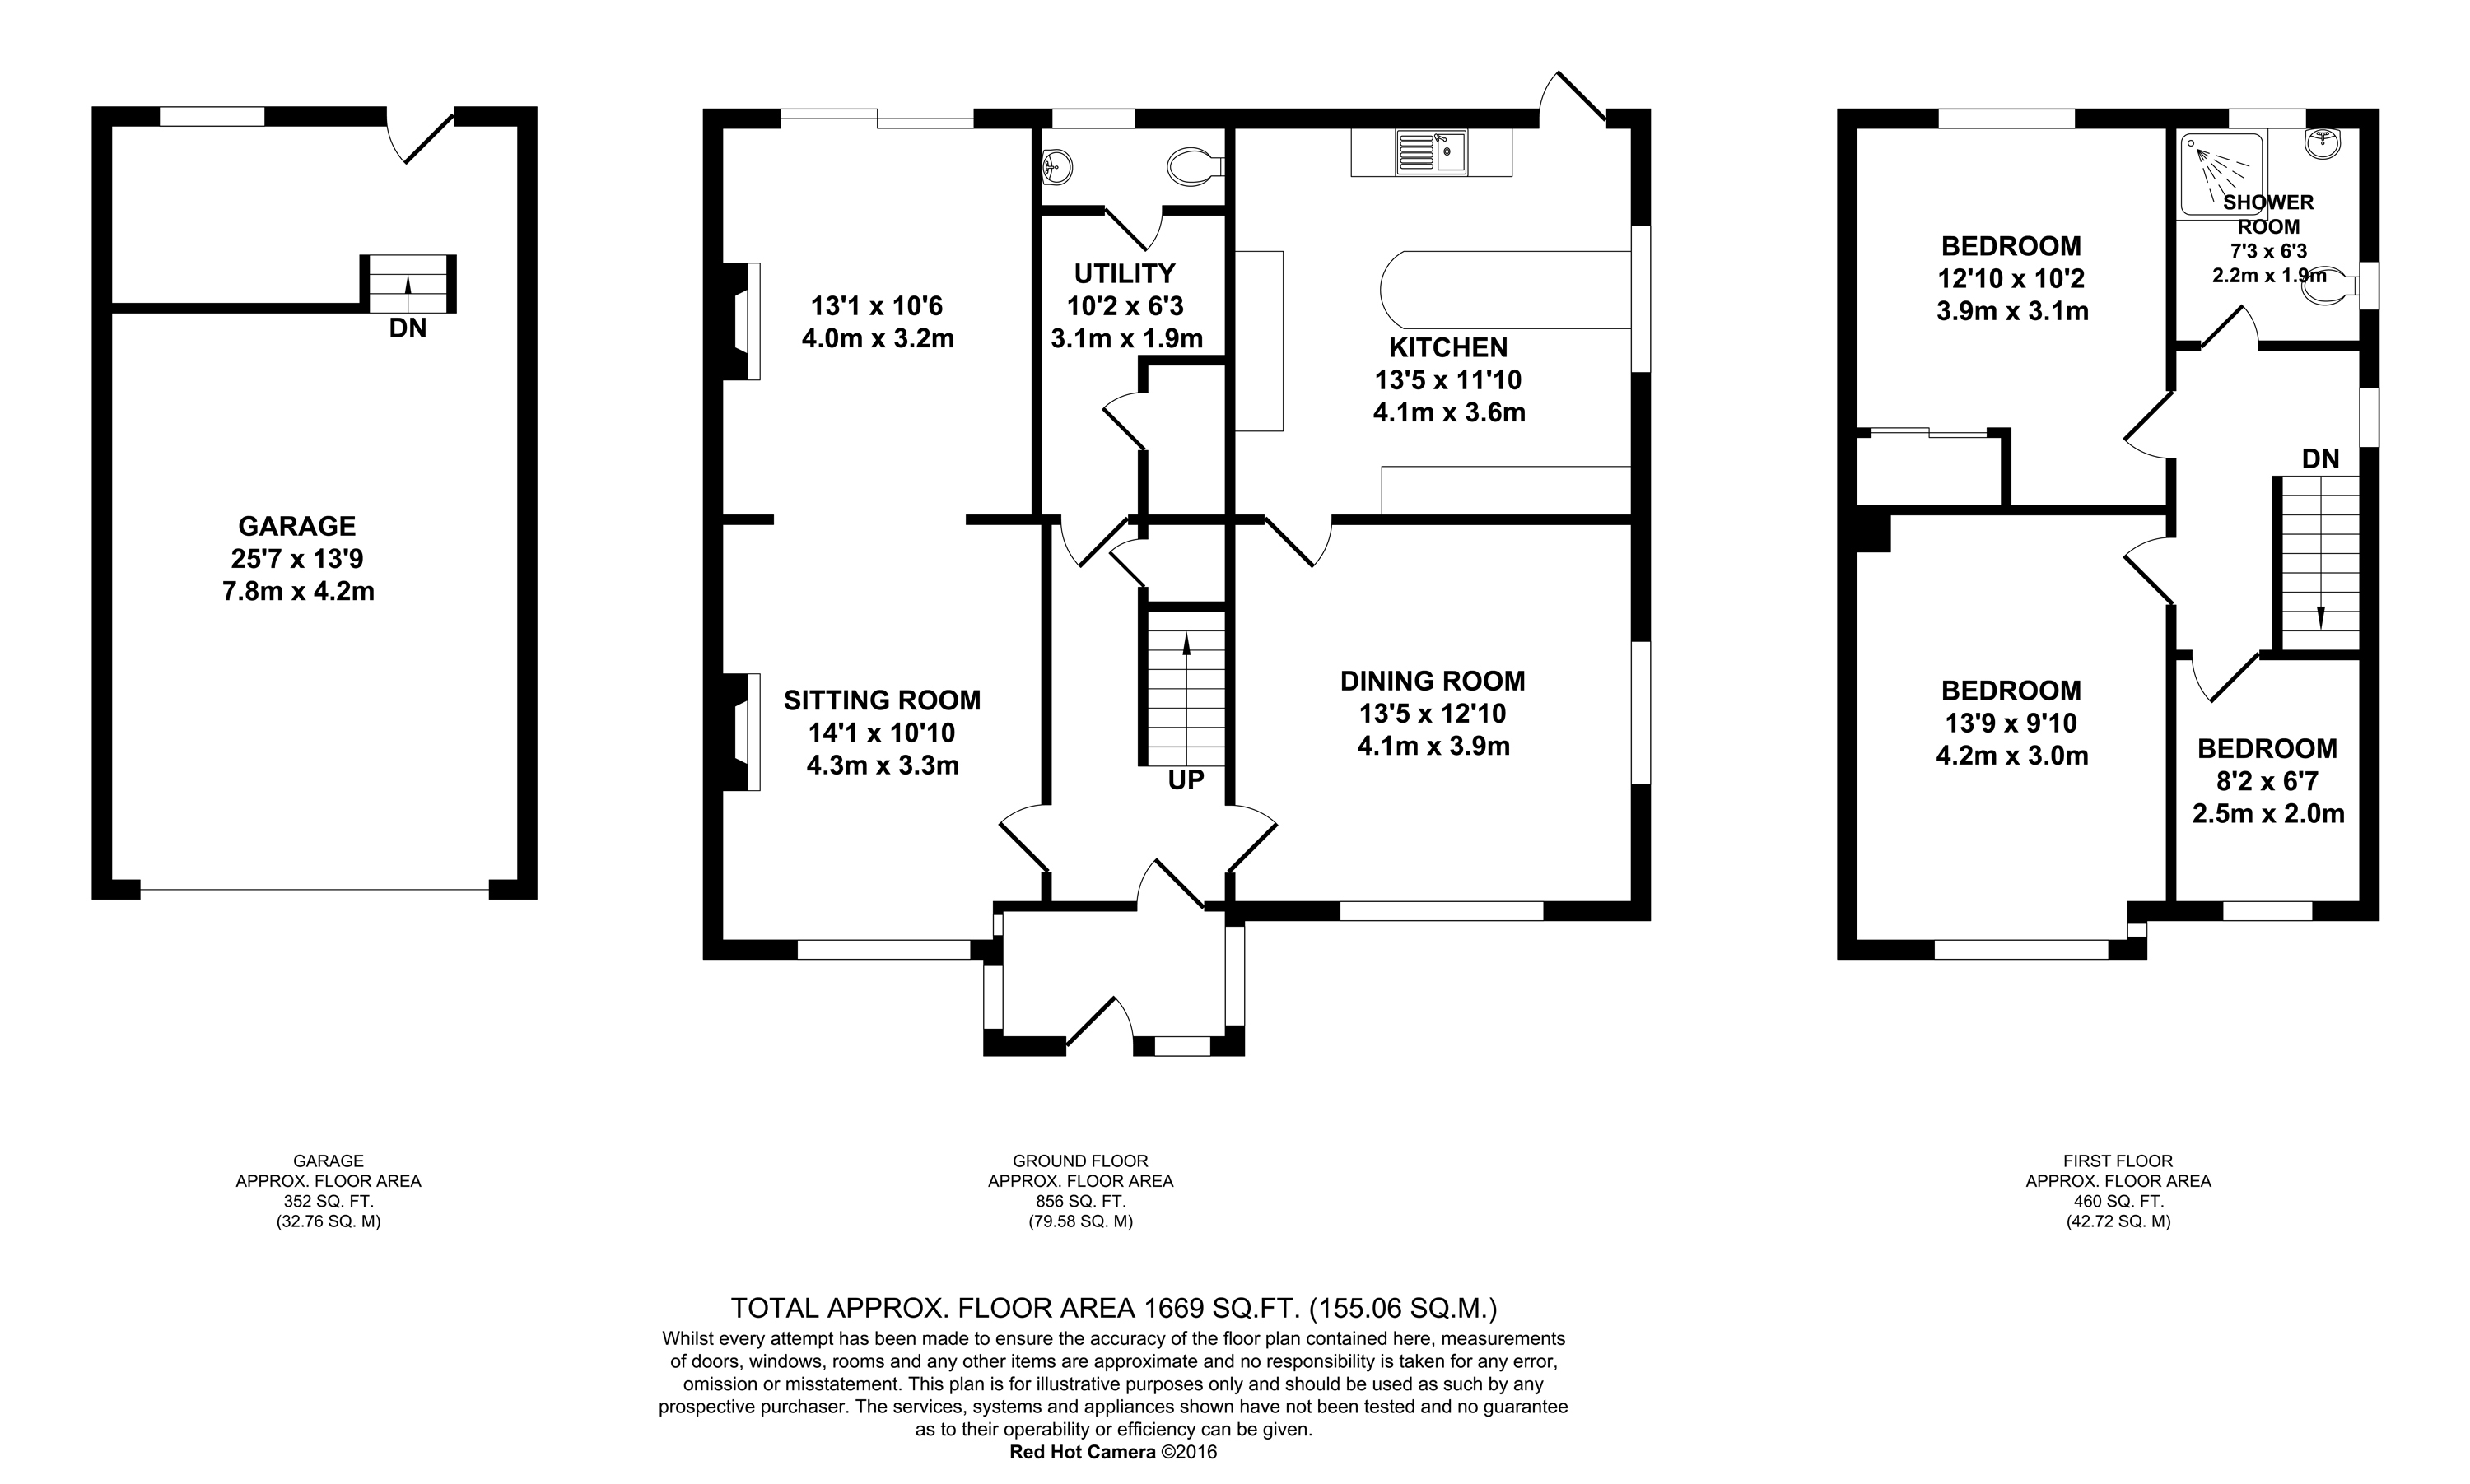 100 32 sq m to sq ft 100 square feet to meter best 90 square meters to square feet